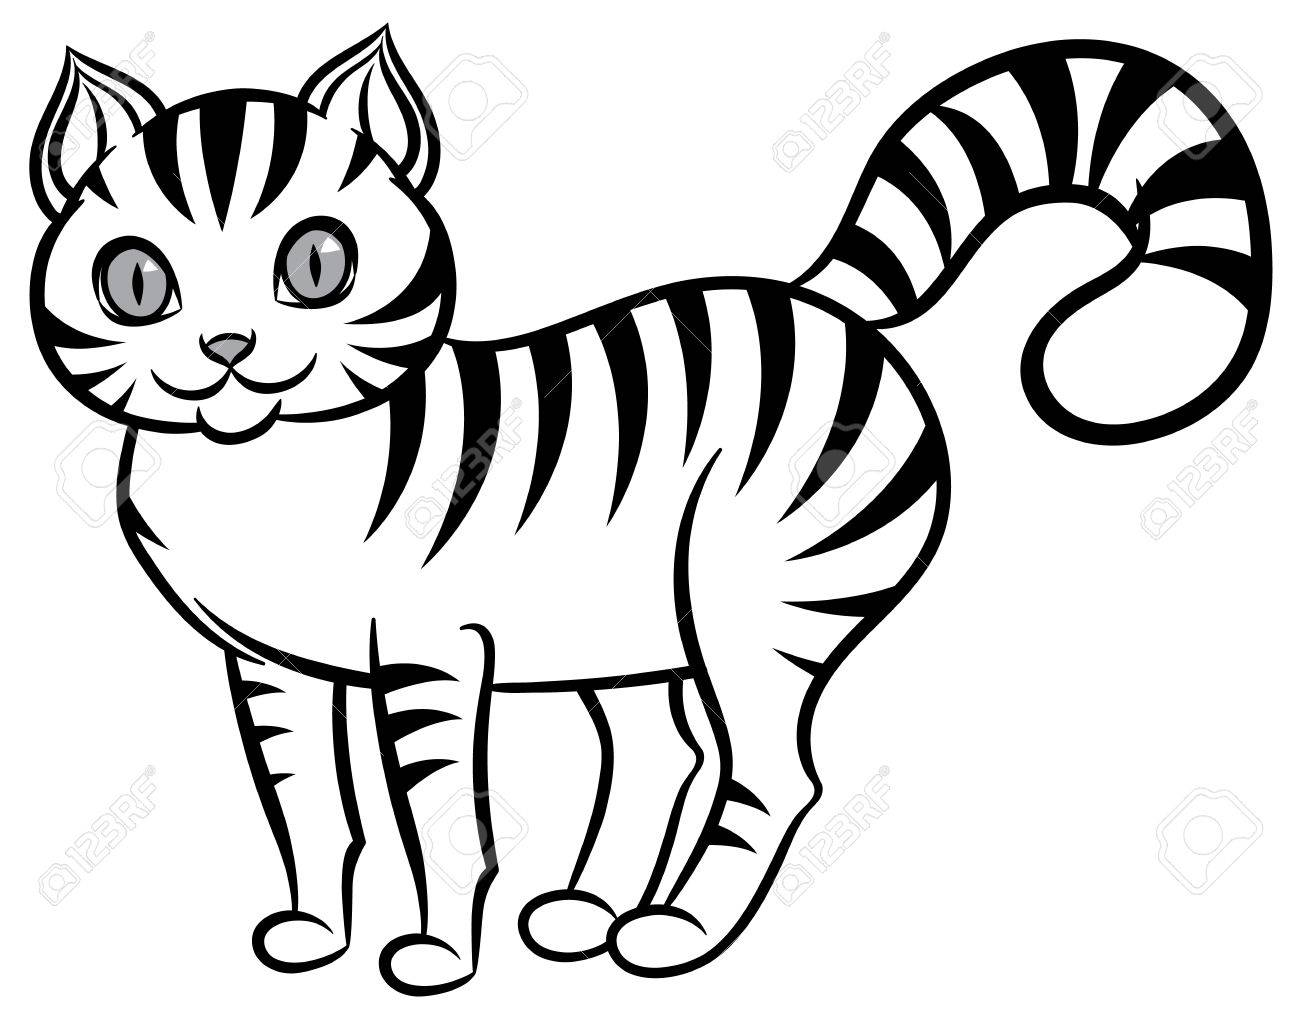 1300x1022 Isolated Black And White Stripped Cat